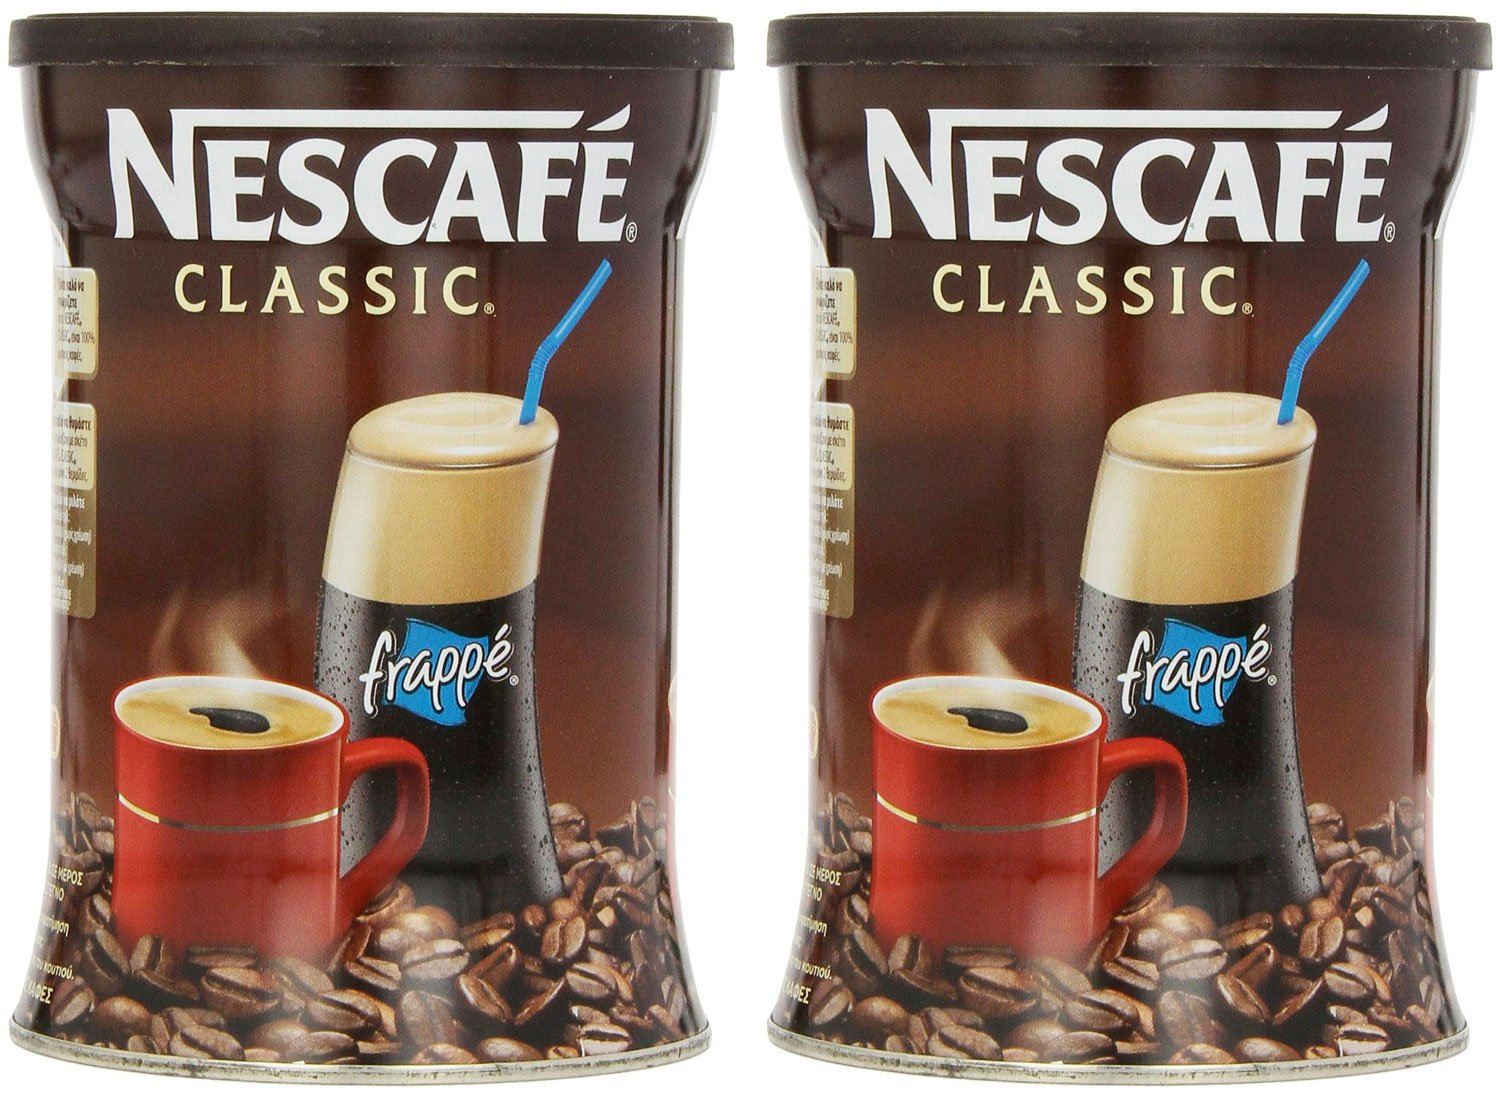 Nescafe Classic Instant Greek Coffee, 7.08 Ounce (Pack of 2)